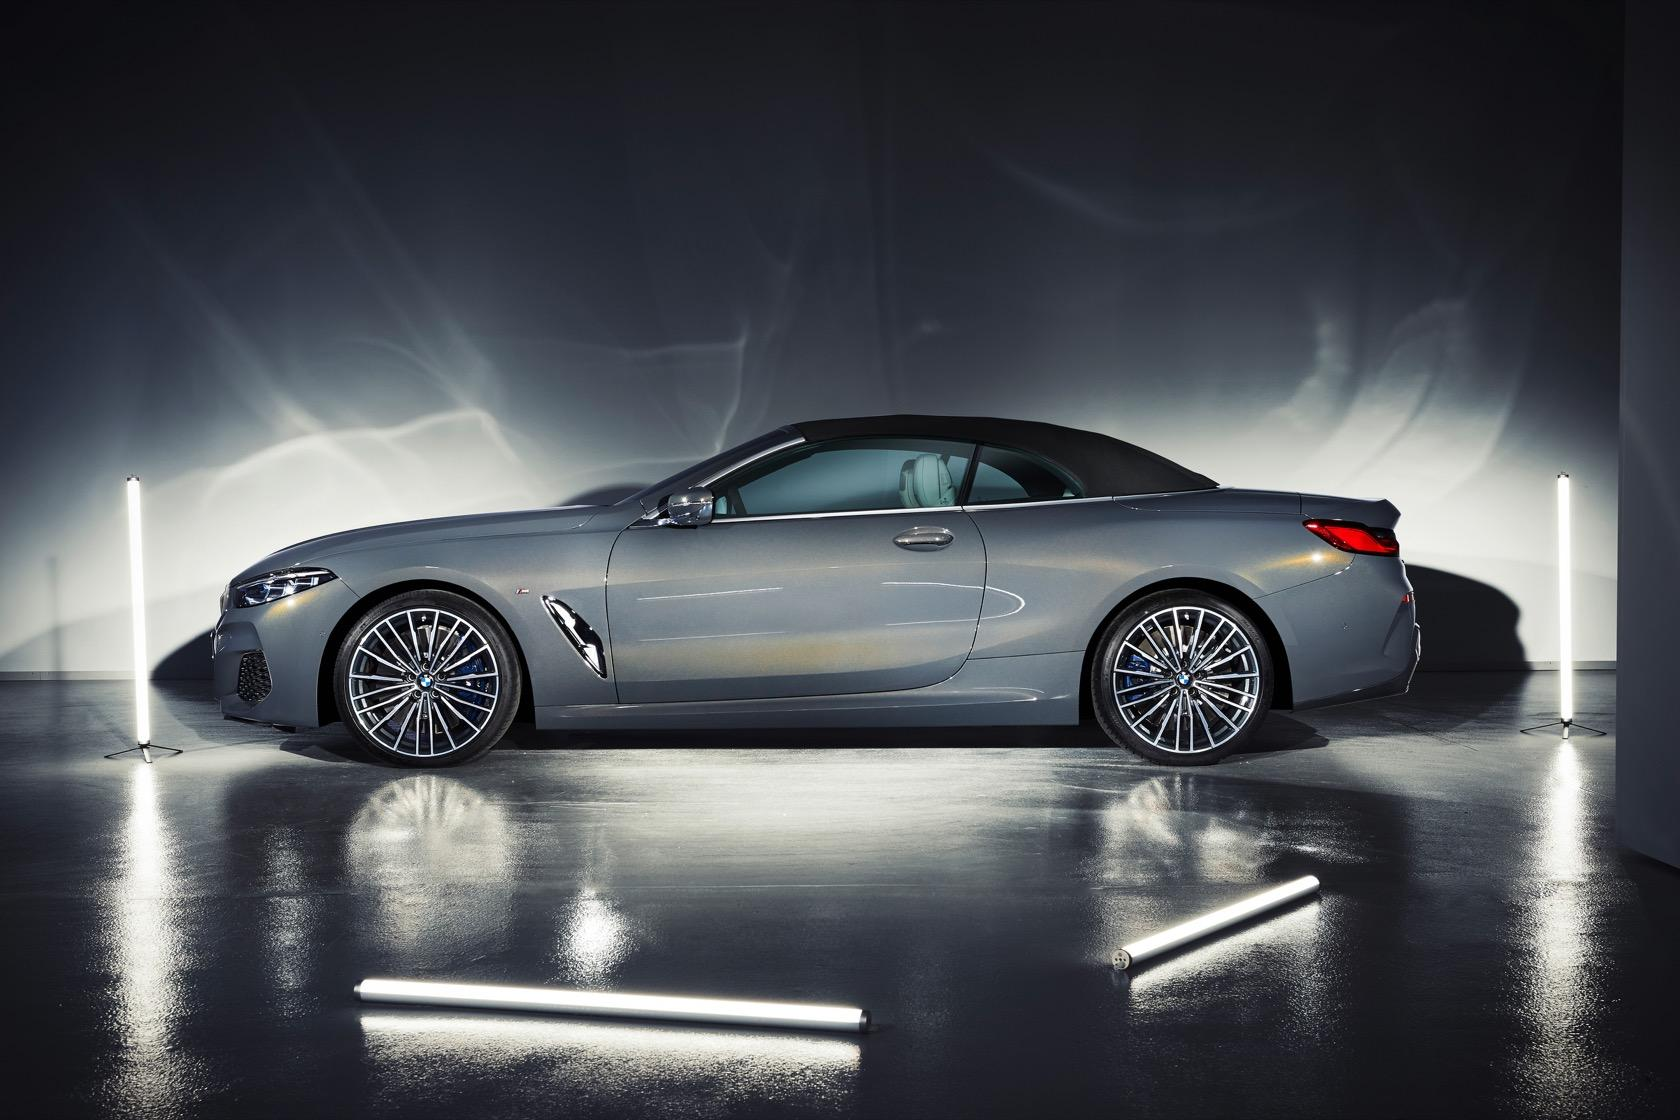 2019 Bmw 8 Series Convertible Revealed This Is The M850i